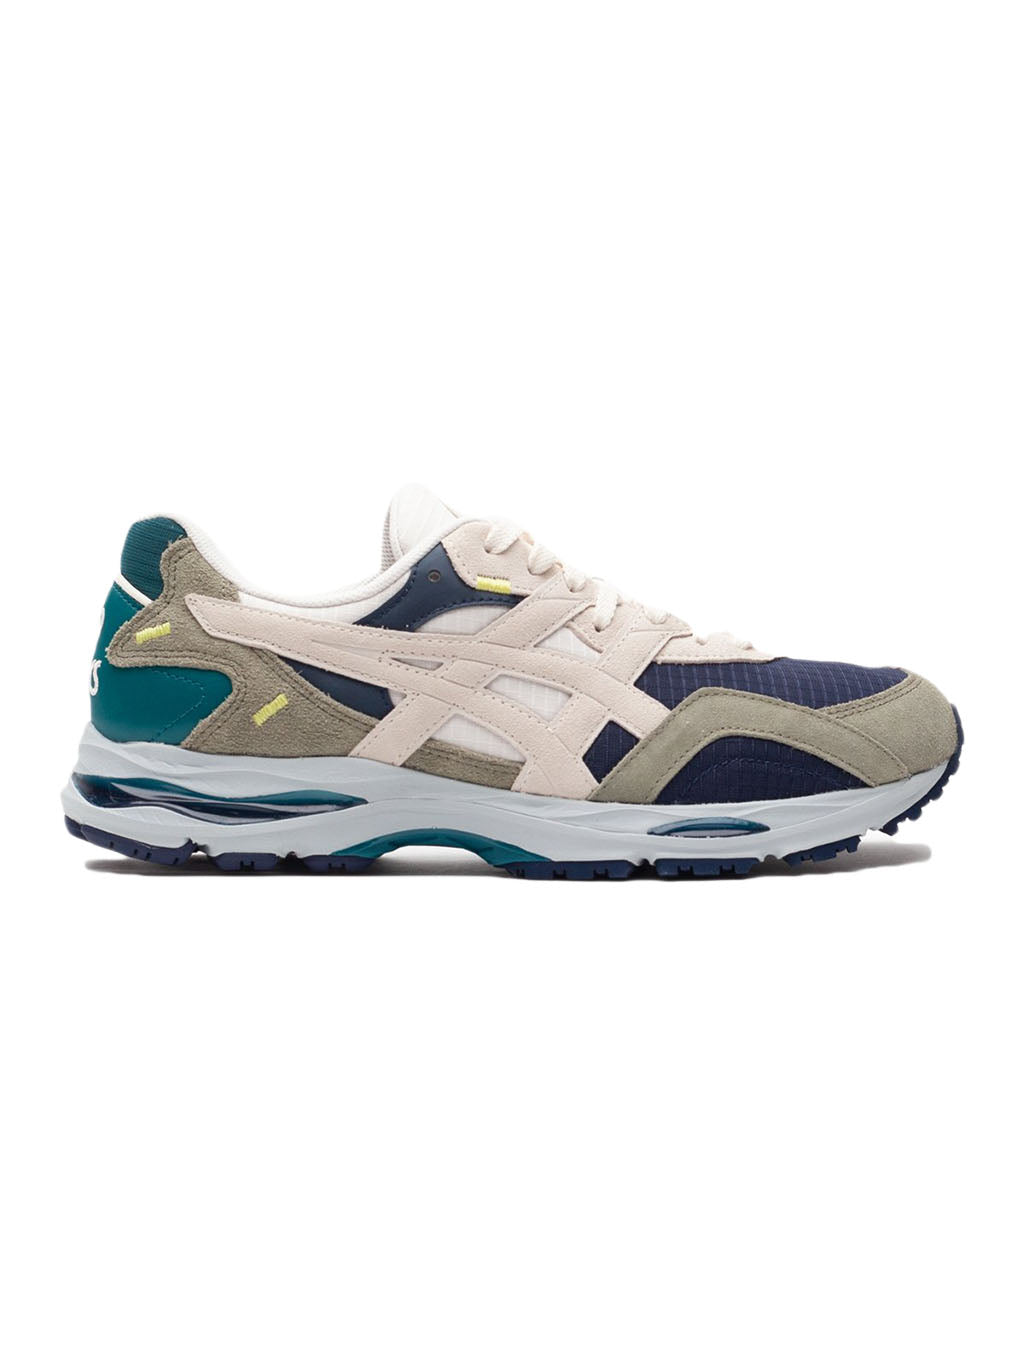 Lichen Green and Birch Gel-MC Plus Sneakers